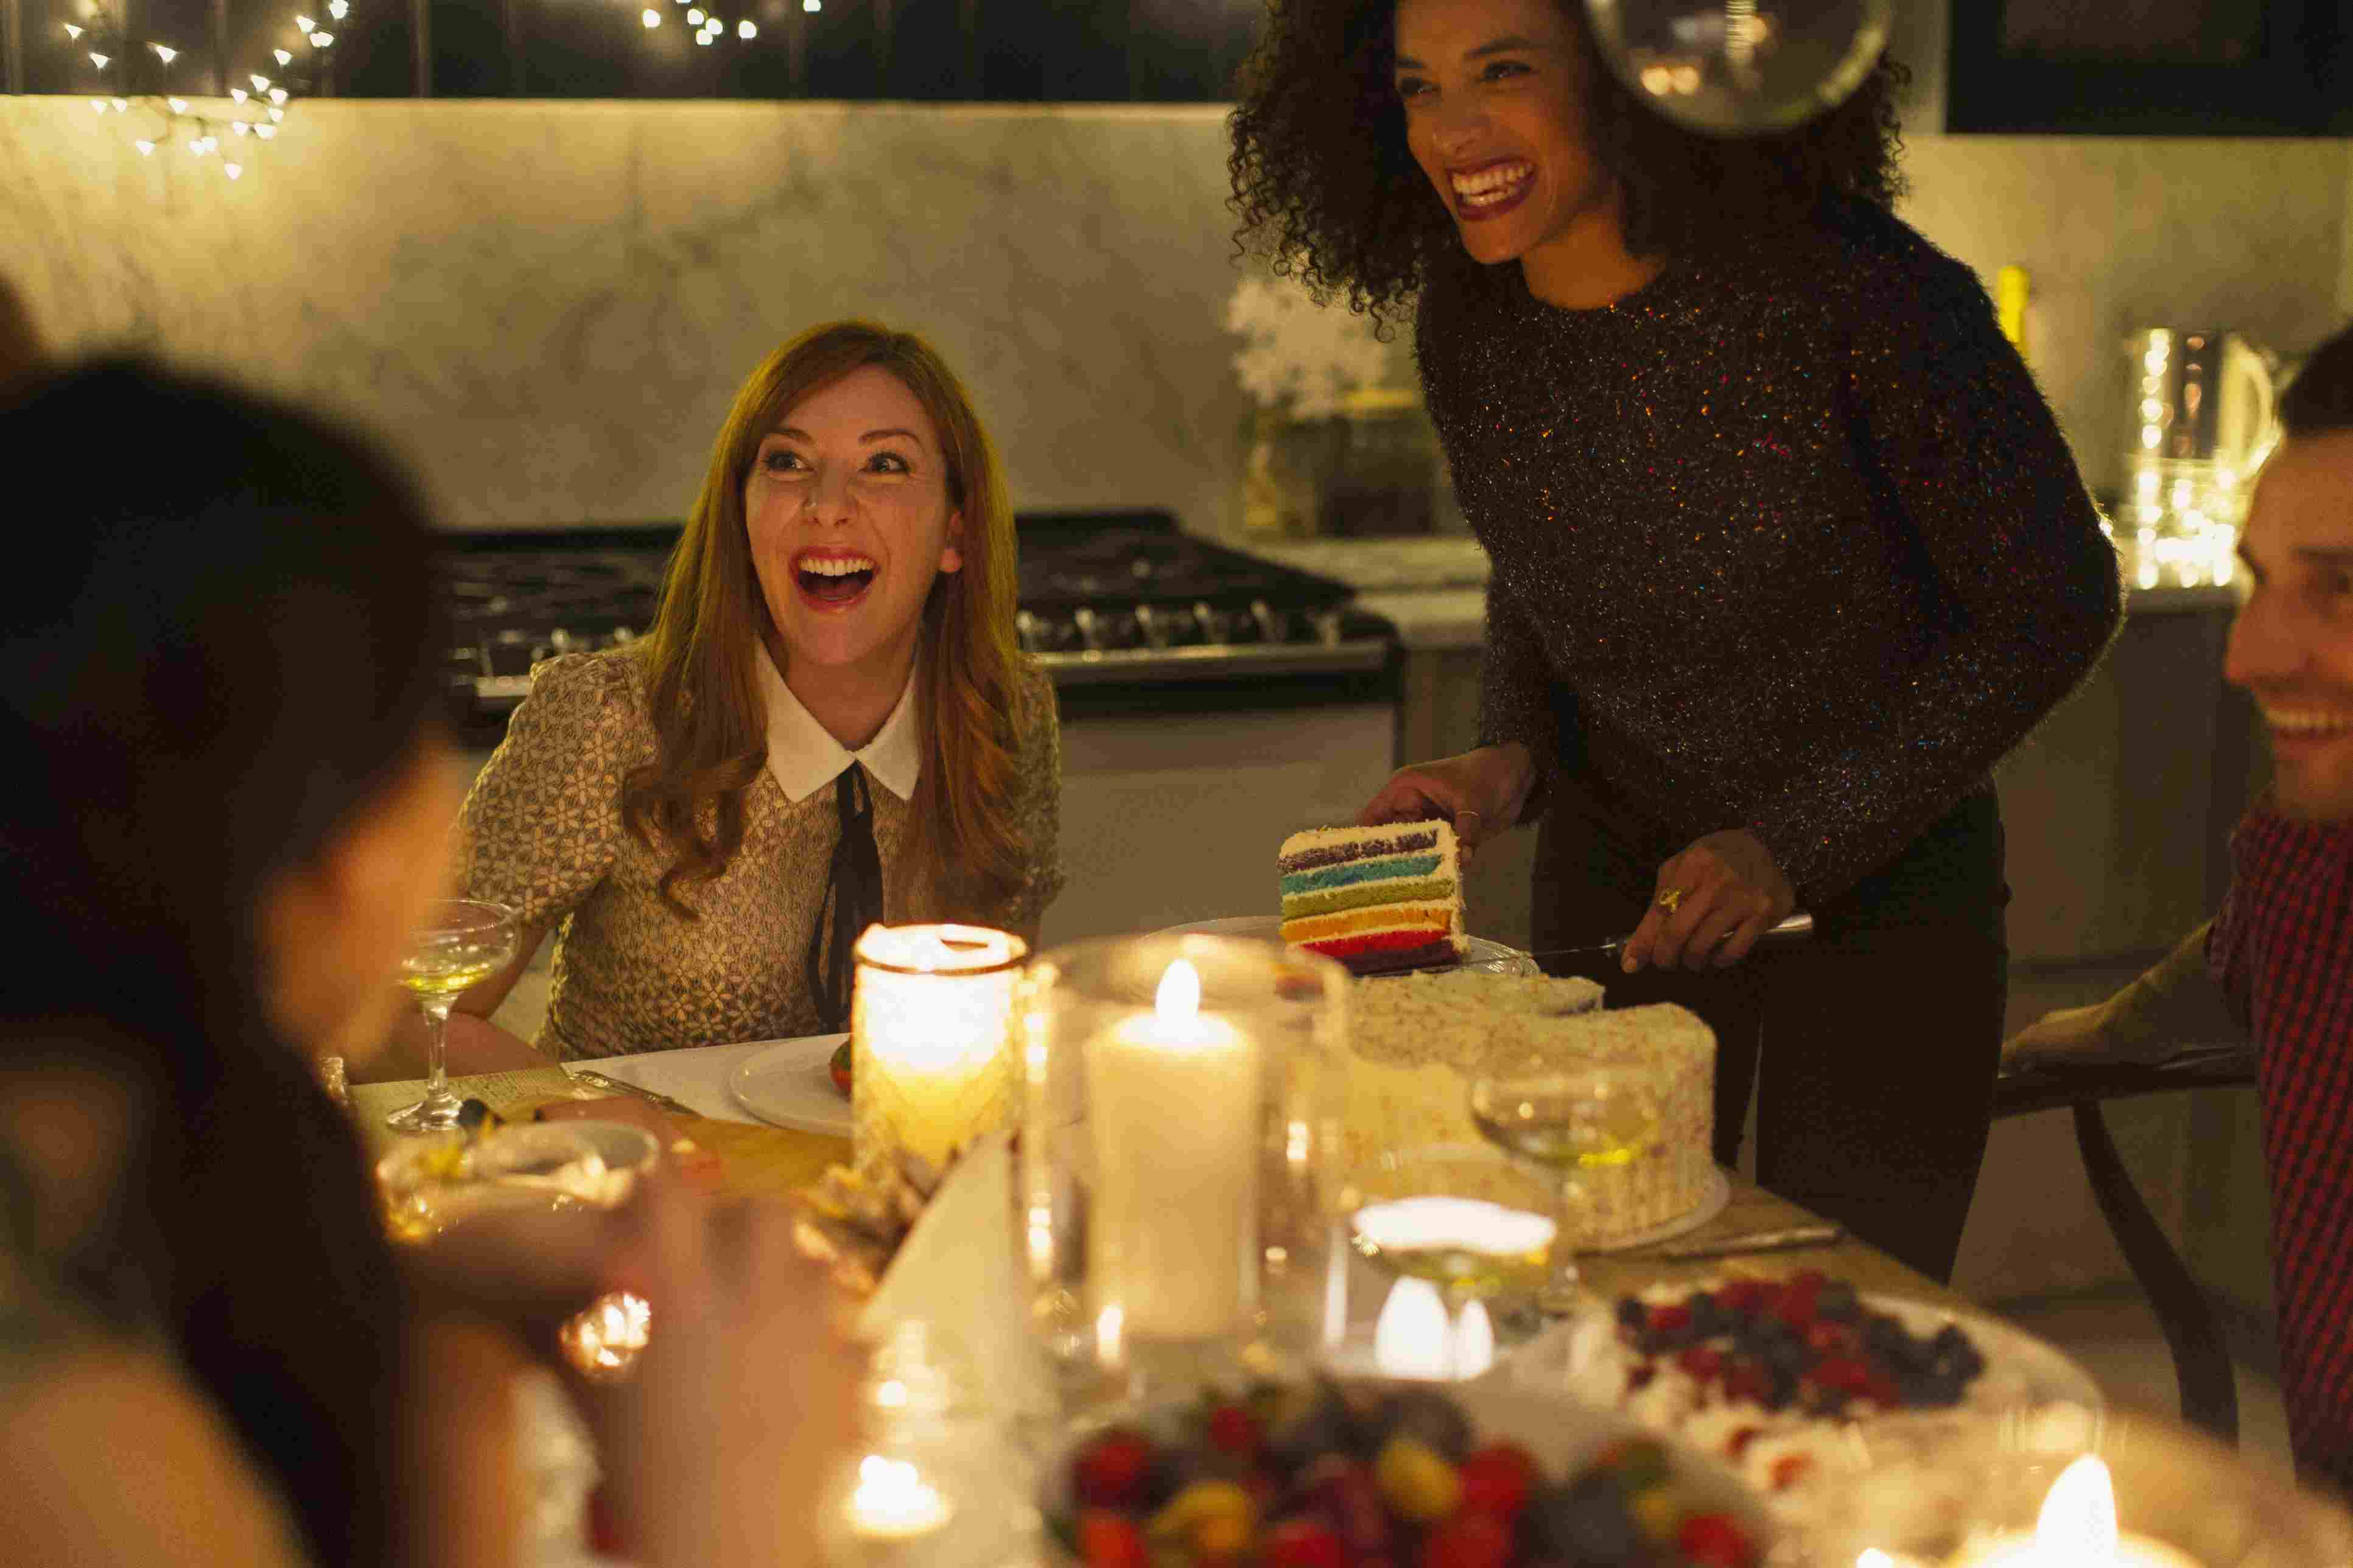 Laughing friends enjoying cake at candlelight dinner party